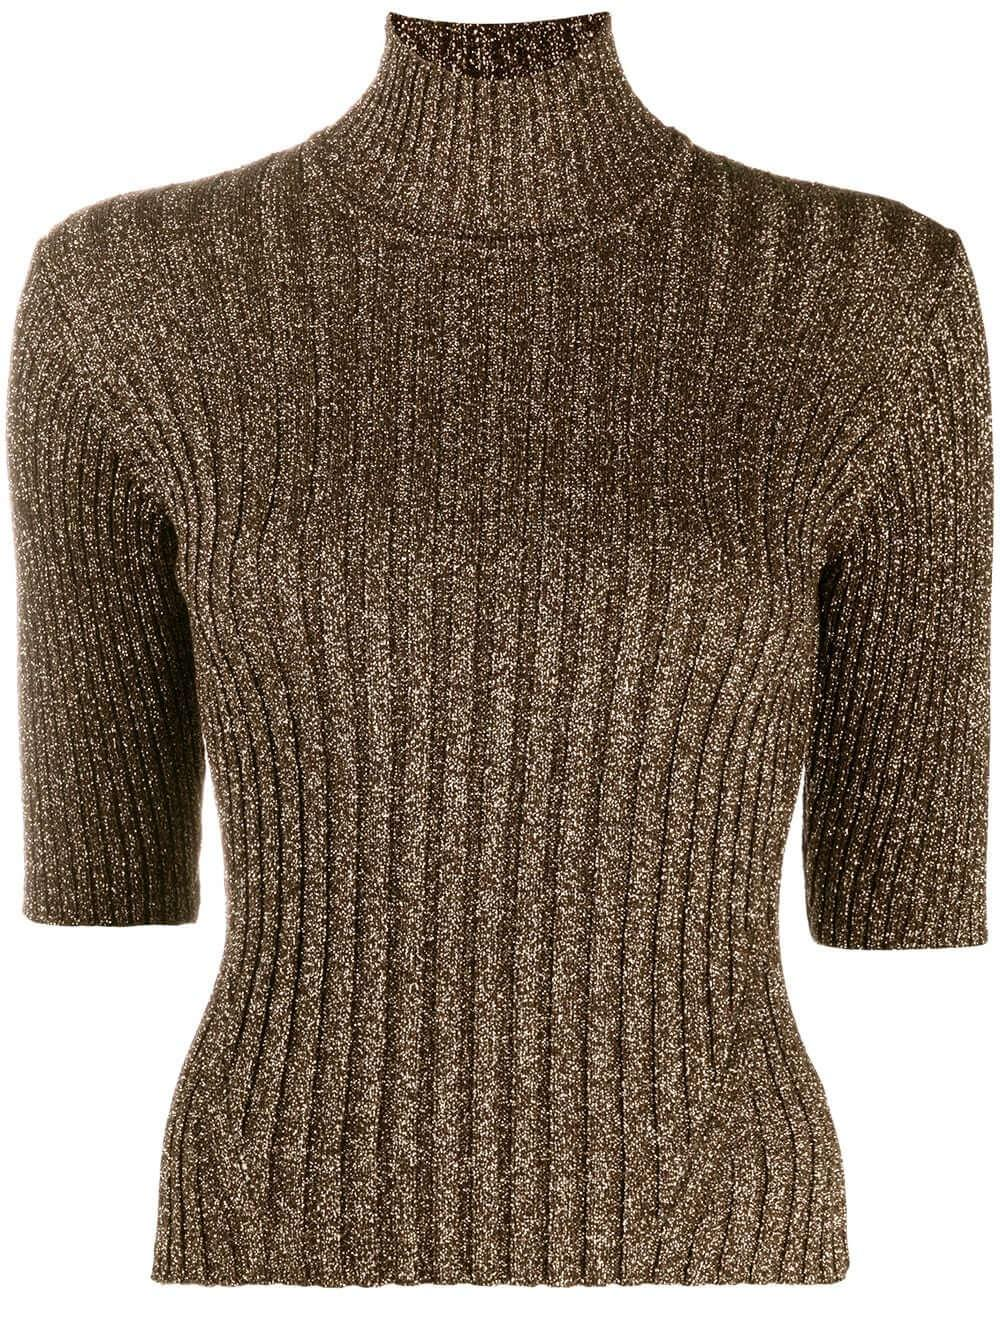 Glitter Knit Turtleneck